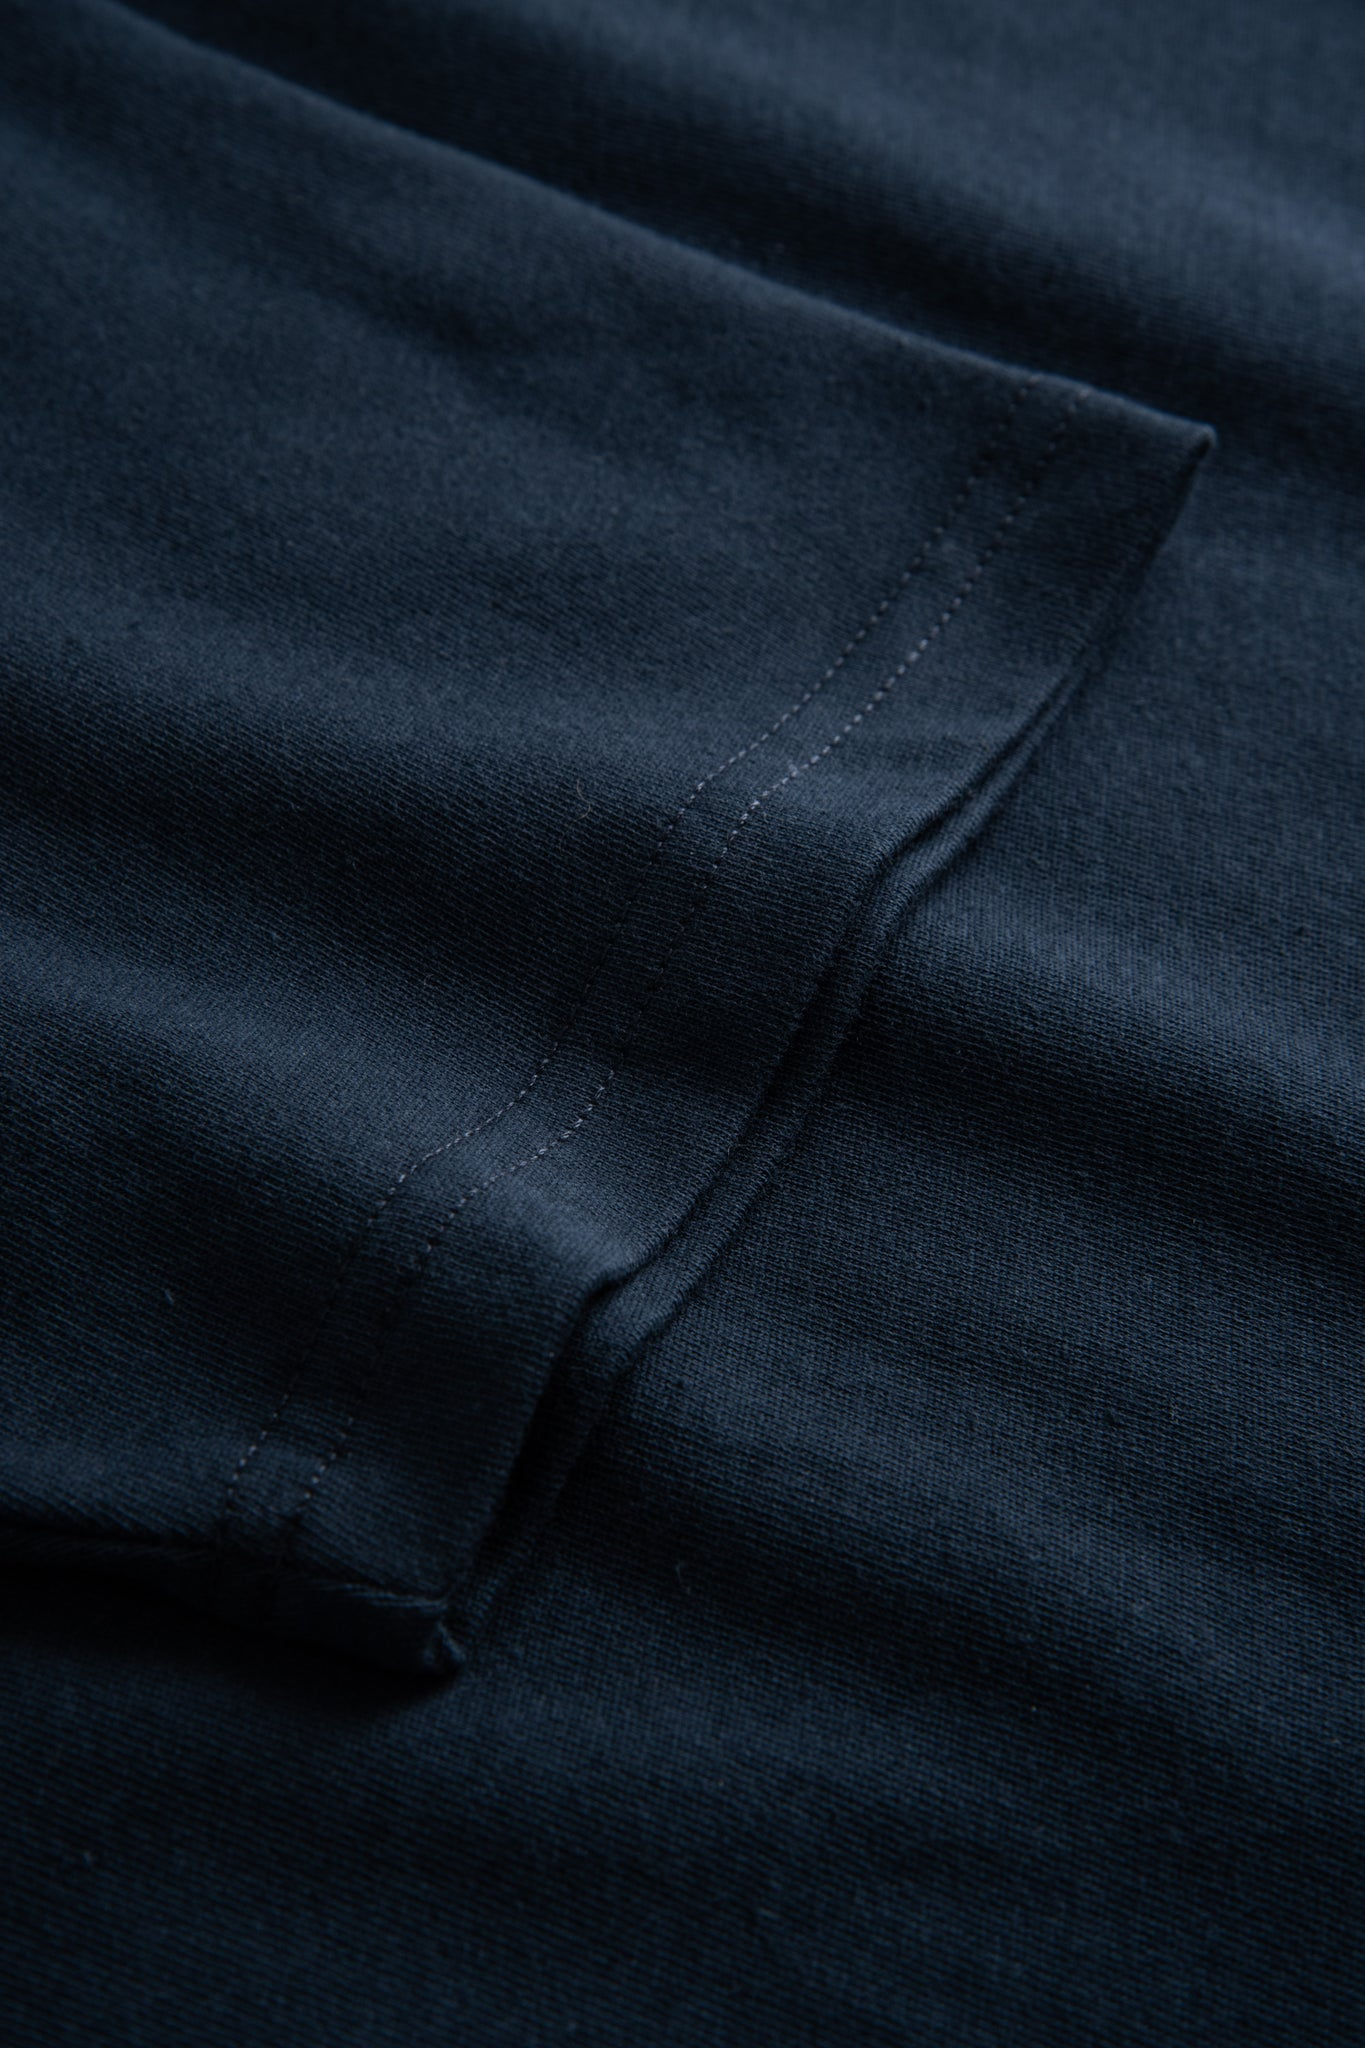 Wood Wood // Bobby pocket t-shirt - navy blue